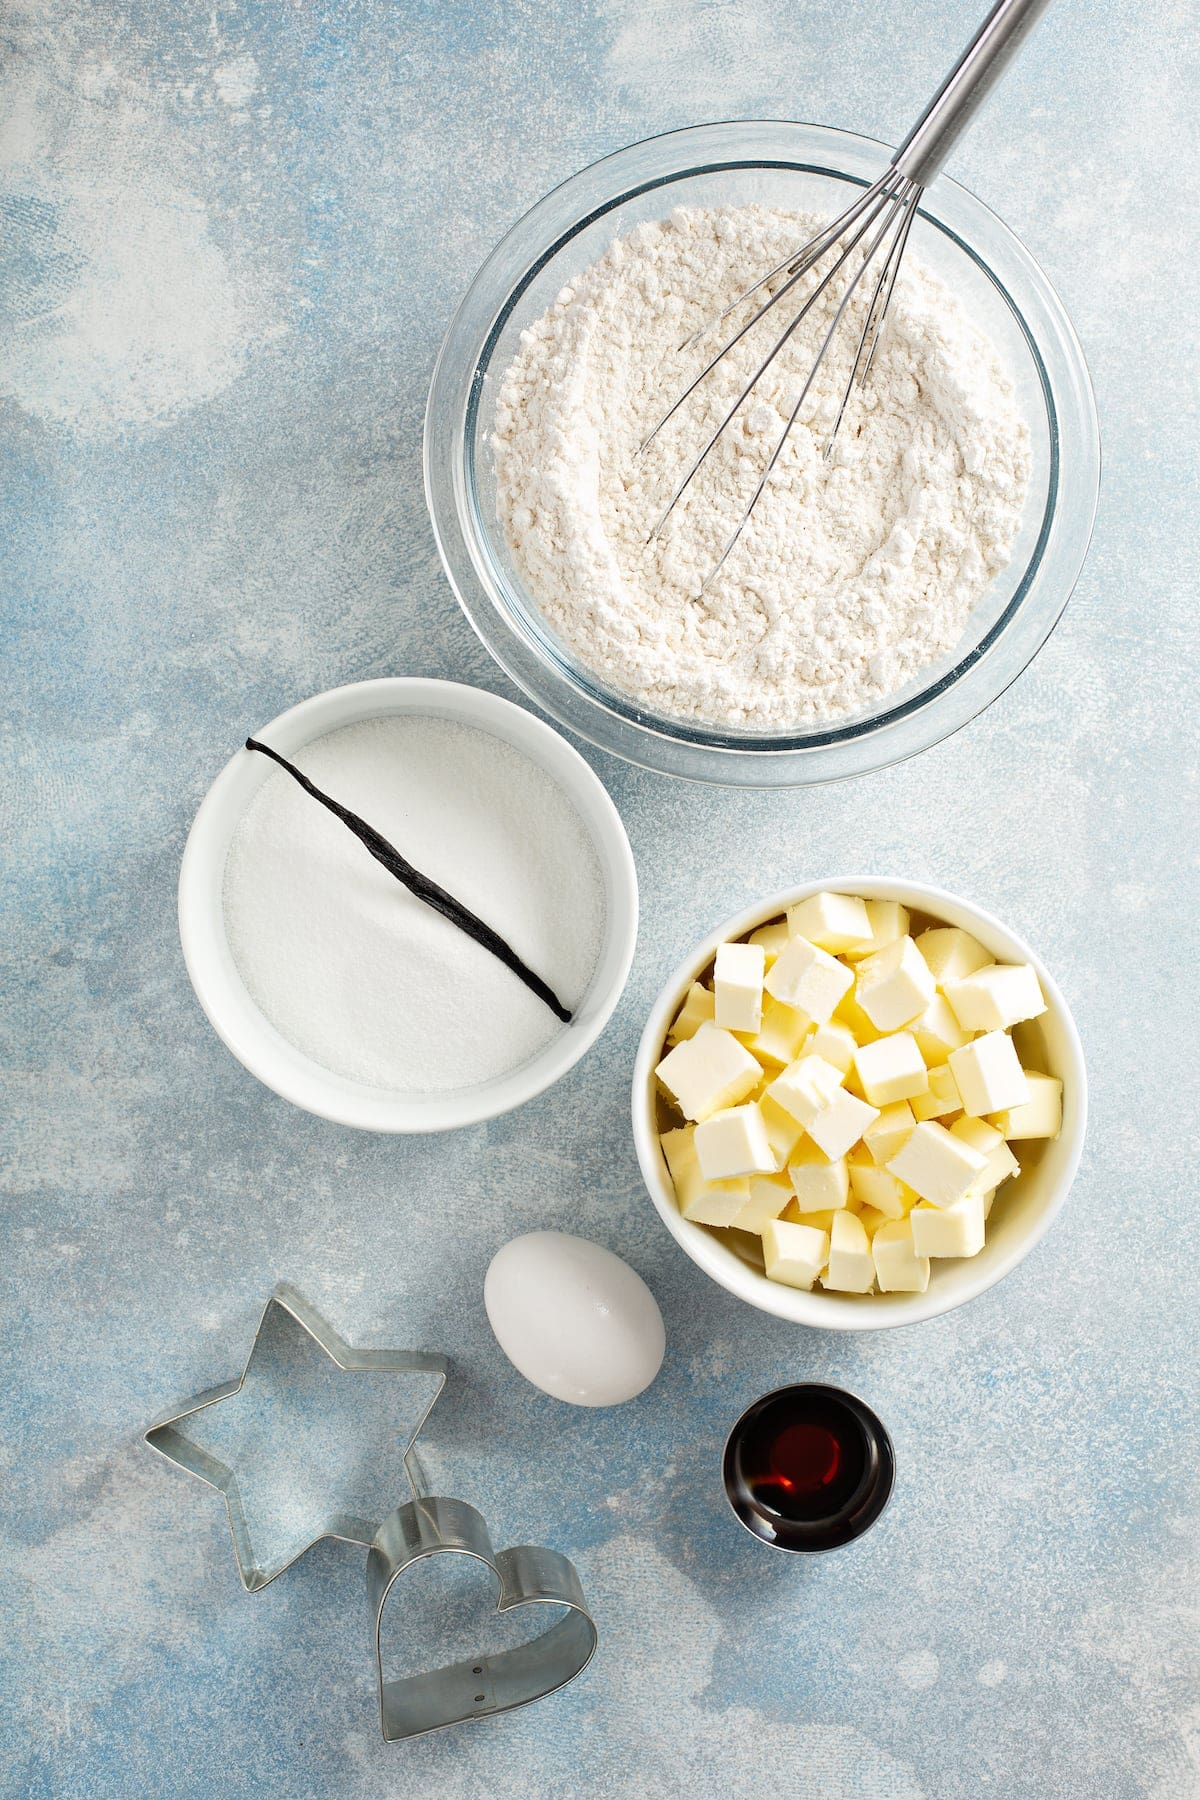 sugar cookie ingredients